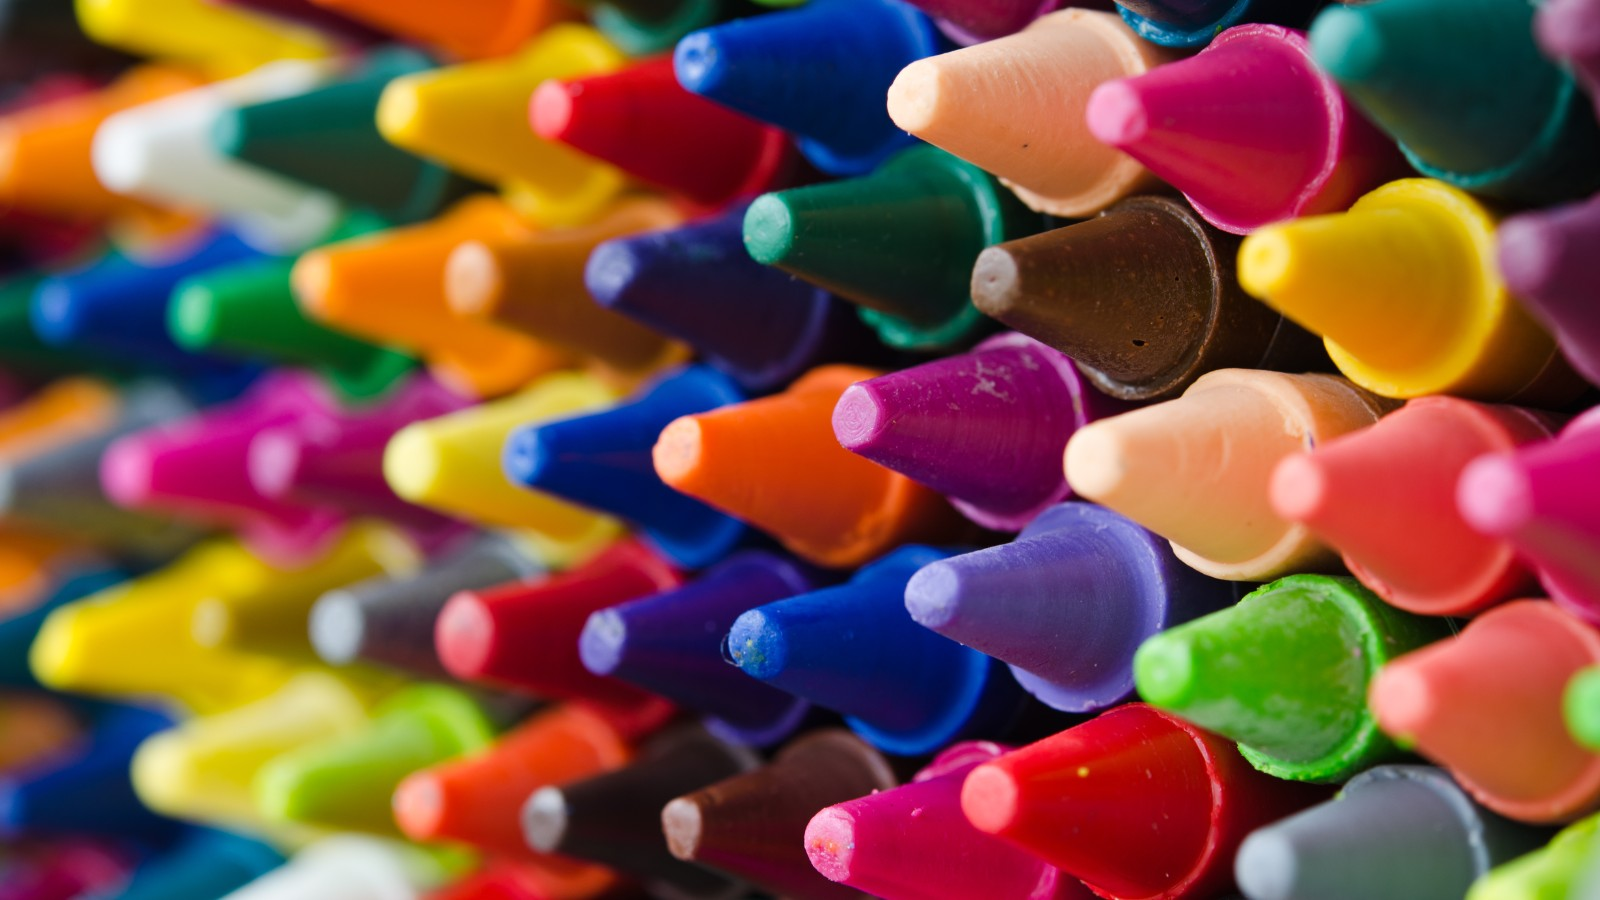 What Does Color Blindness Look Like Crayola S New Color Name Bluetiful Draws Criticism Cnn